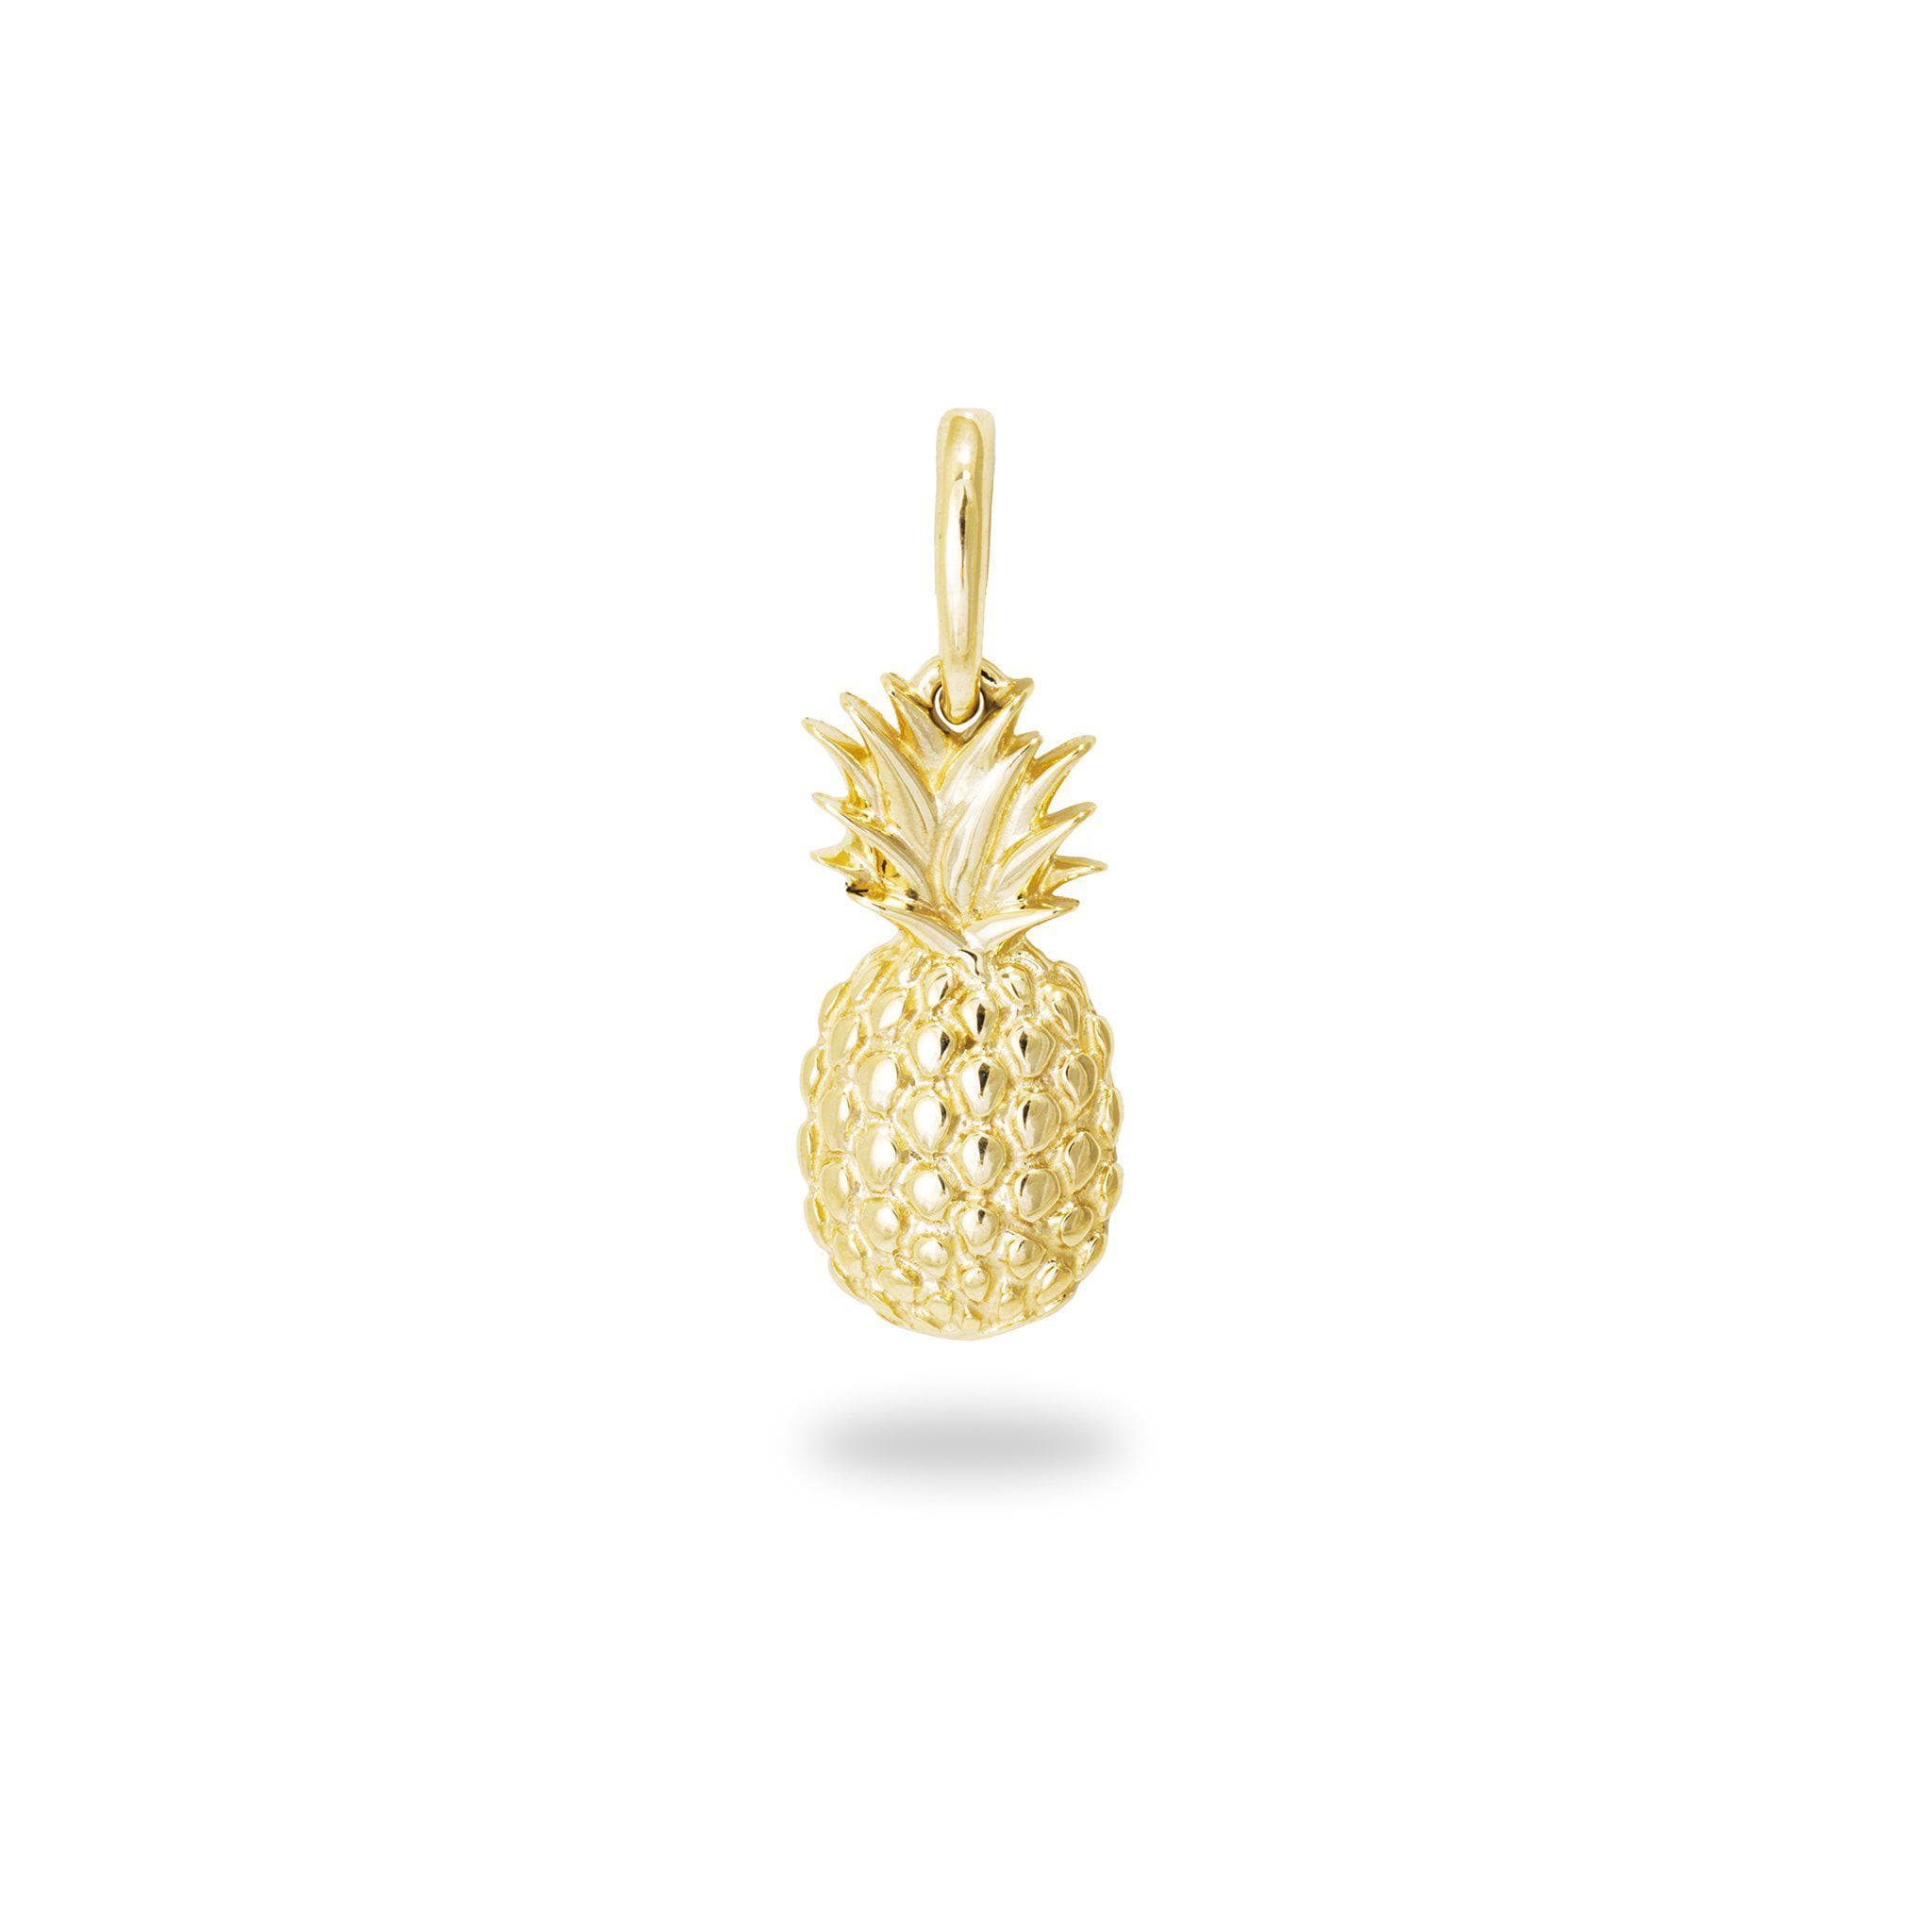 aloha dainty pineapple products necklace image